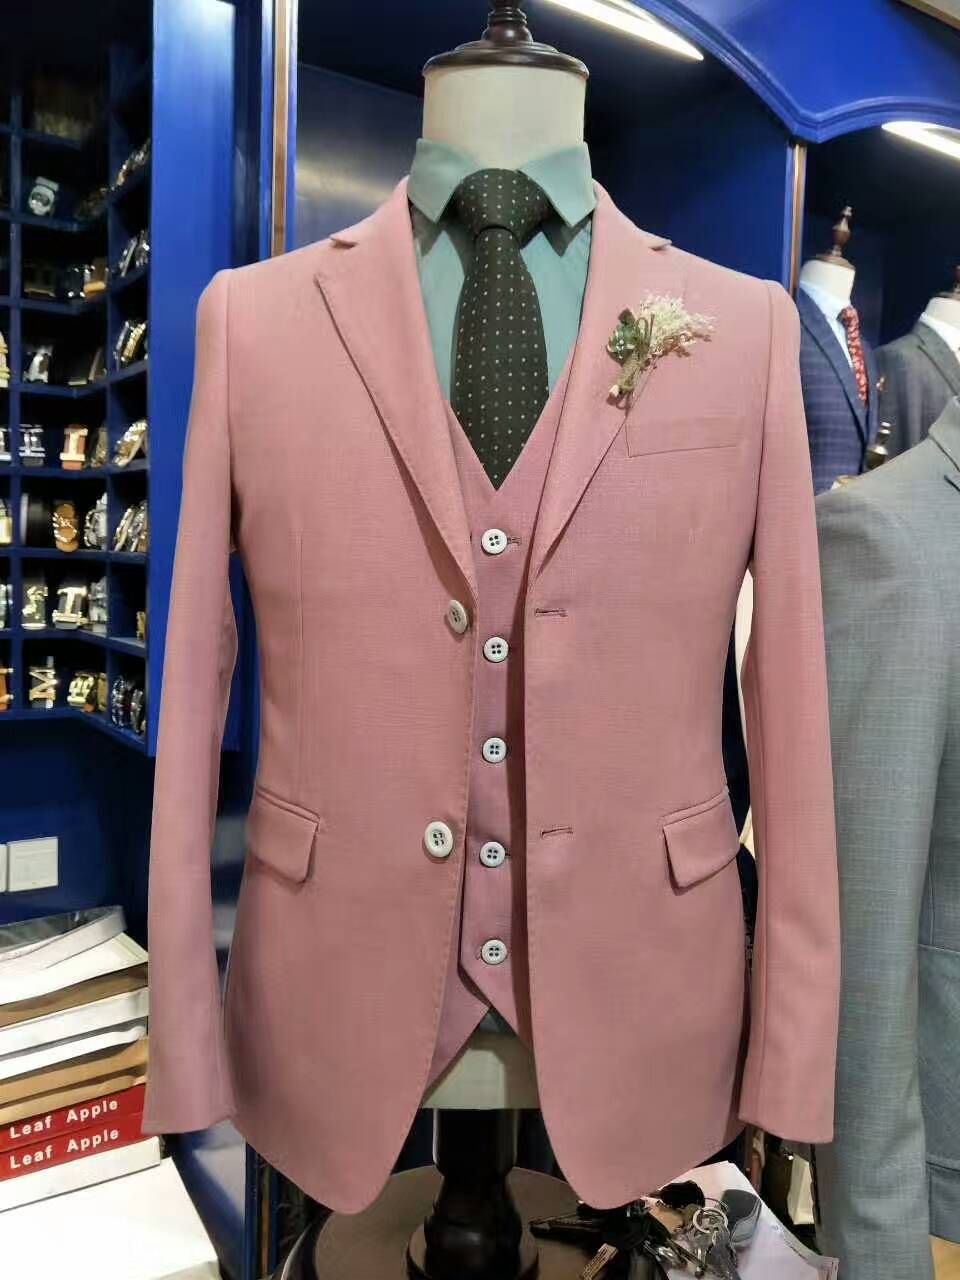 Pink dress and jacket for wedding  Click to Buy ucuc Hot Sale  summer Men High quality pink suits